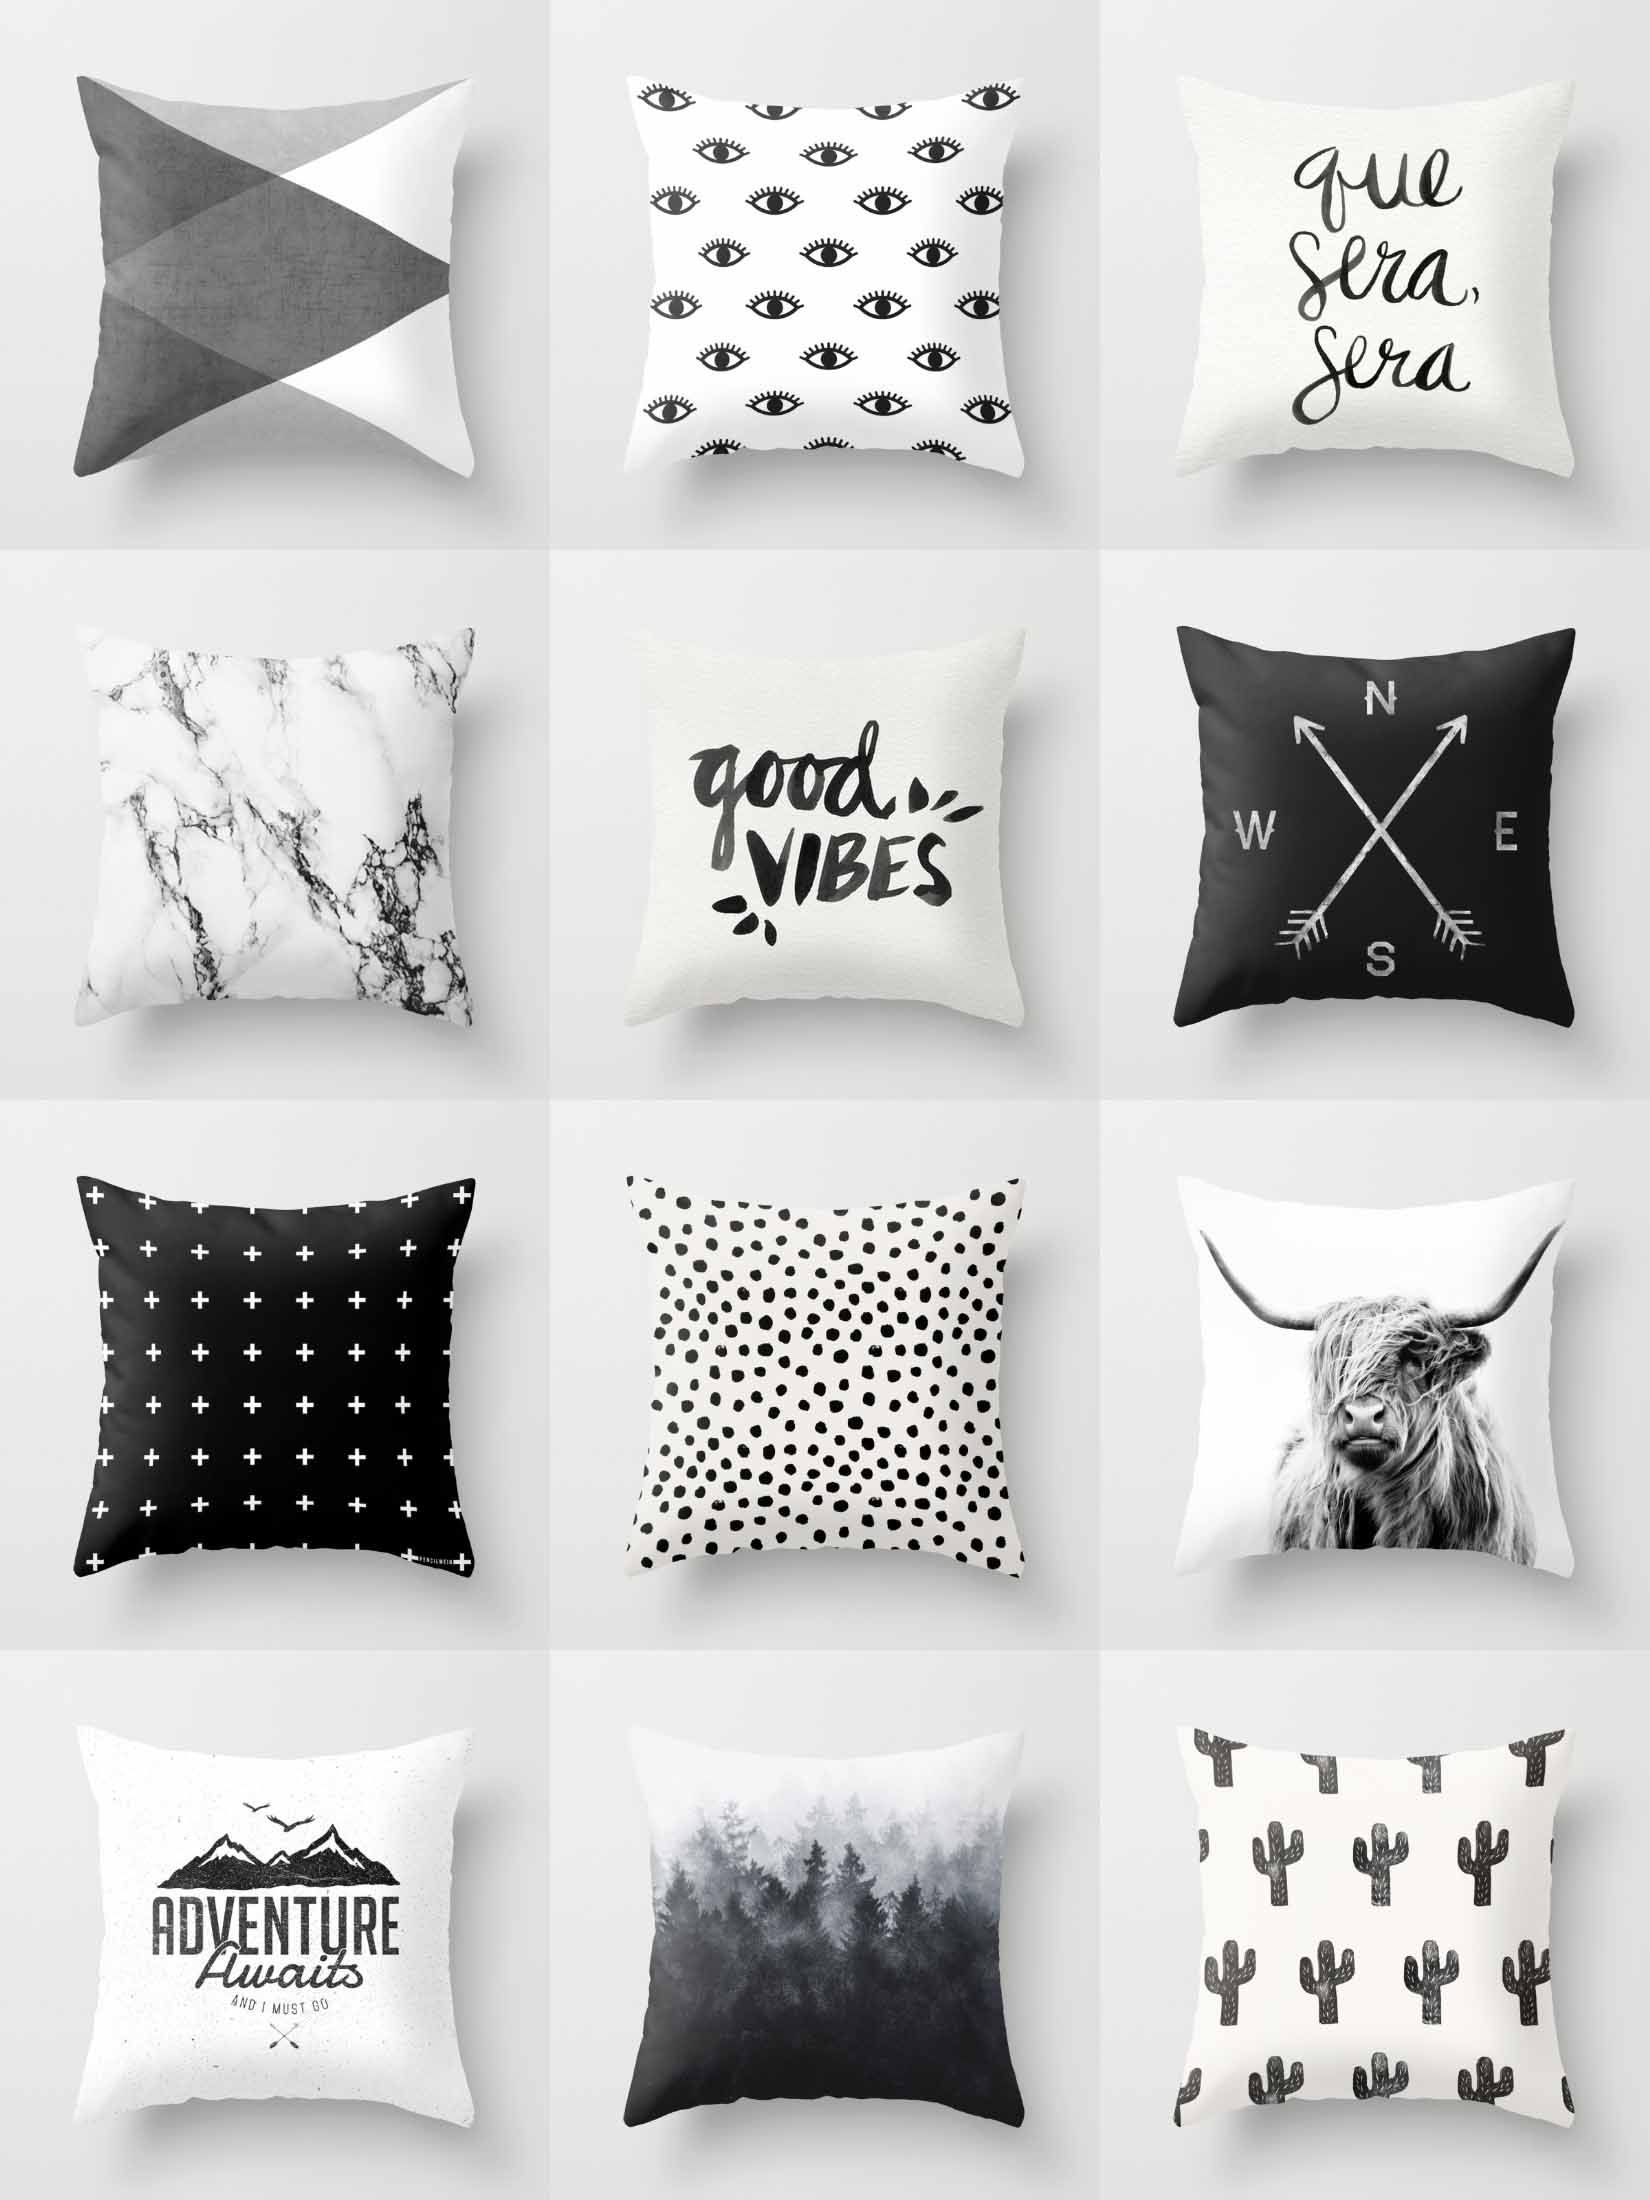 Society6 Throw Pillows - Society6 is home to hundreds of ...